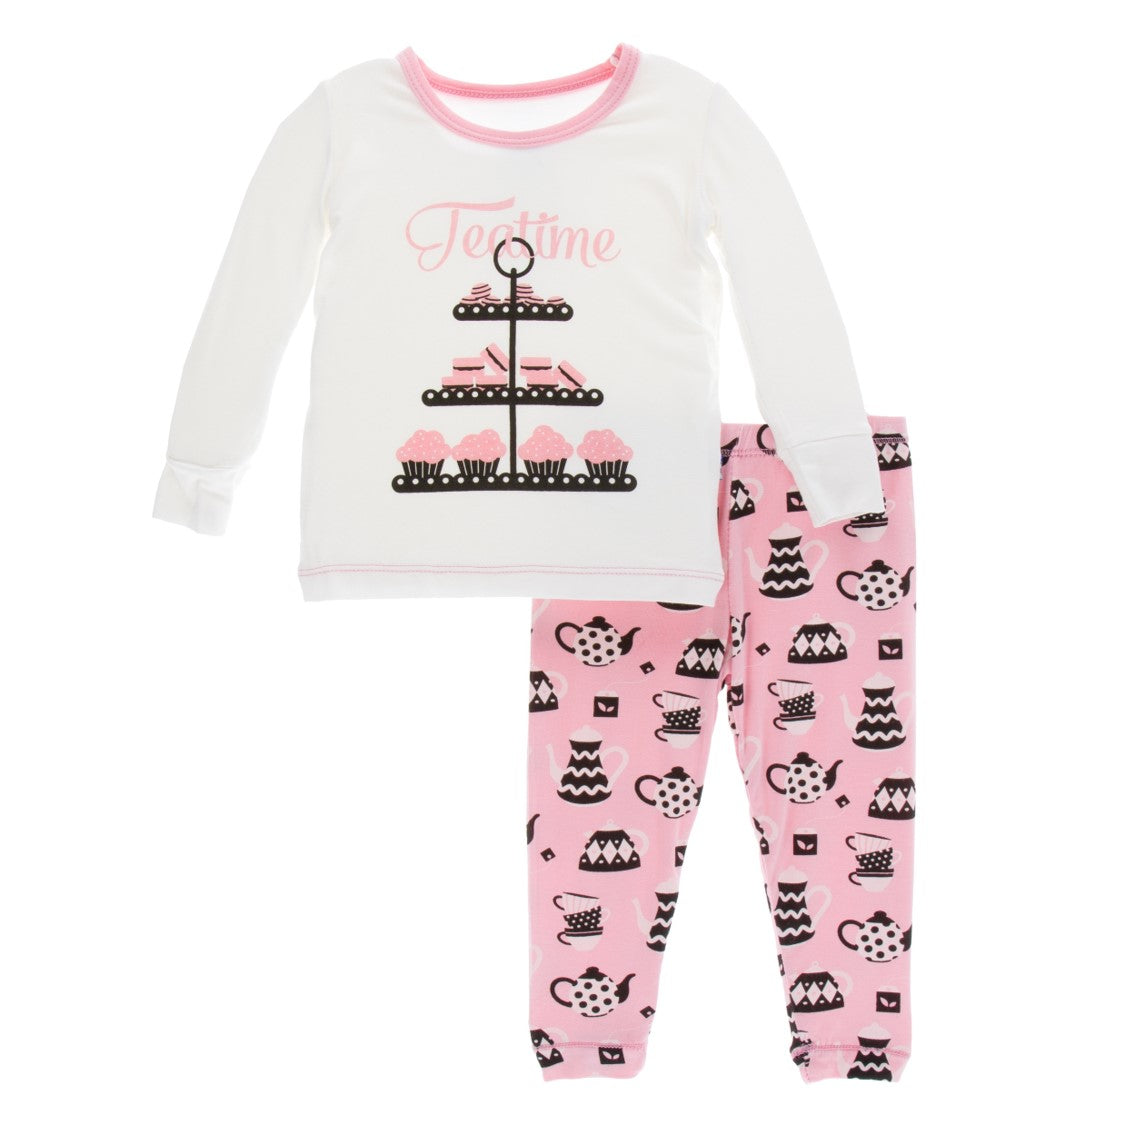 Kickee Pants - Fall 2 2018 - Pajama Set - Teatime